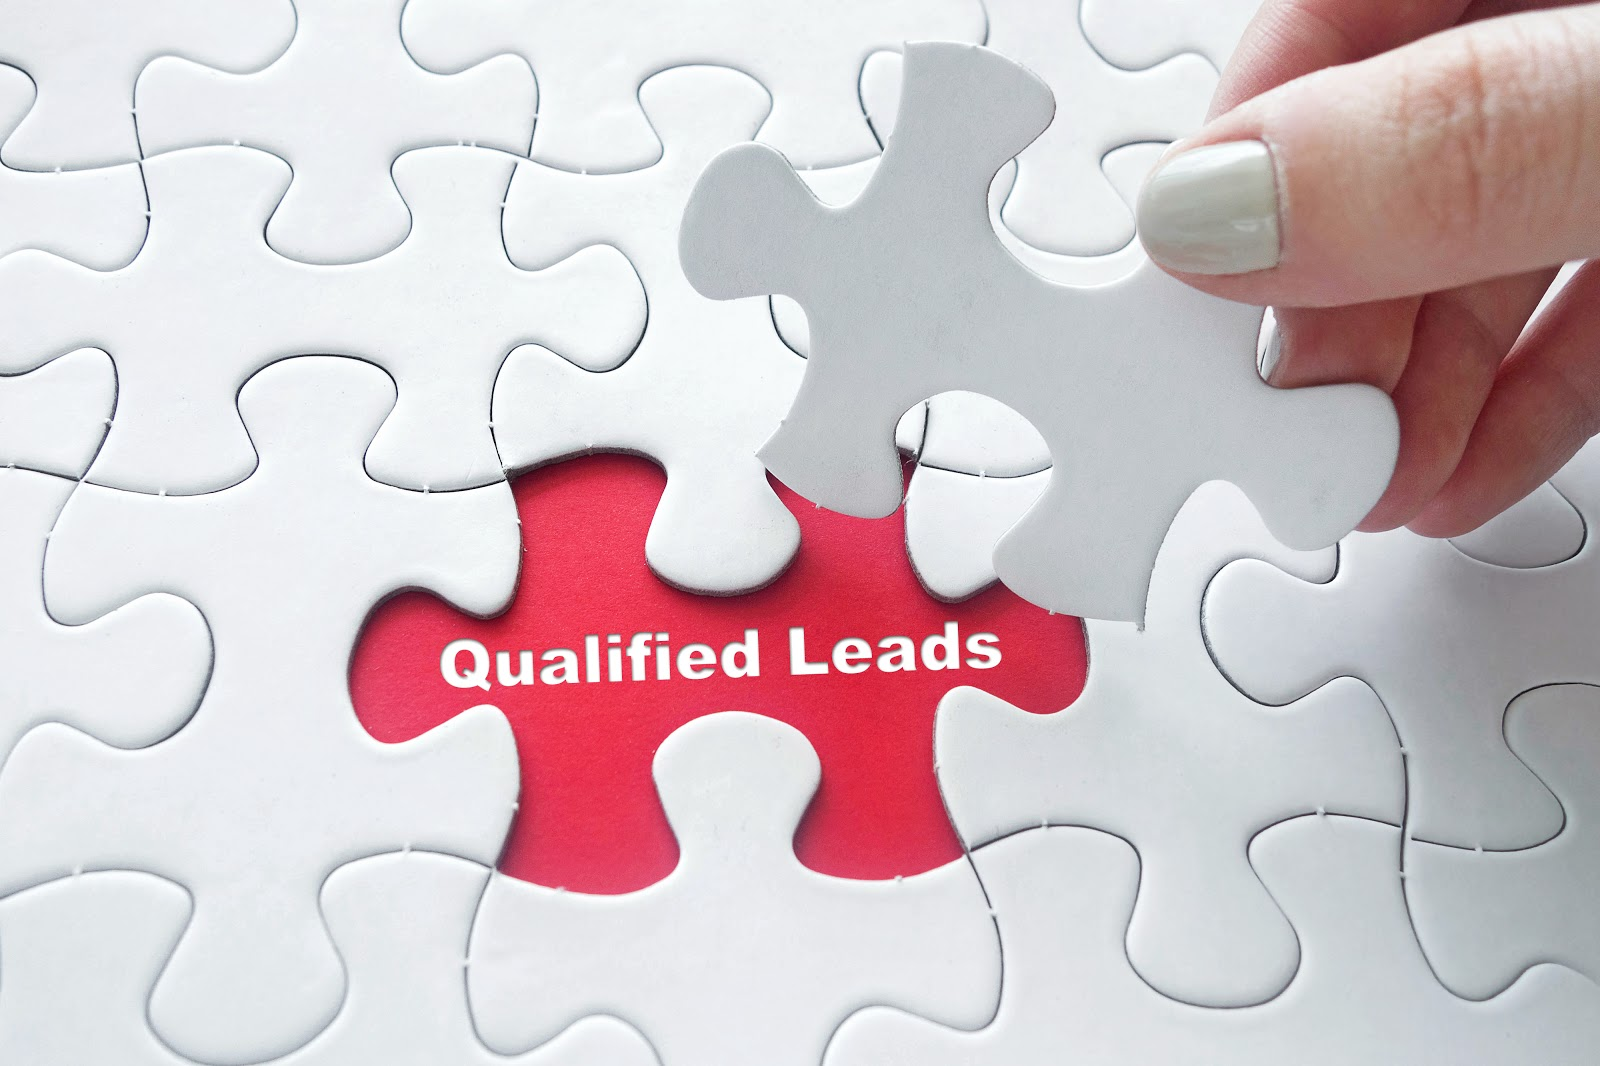 Lead generation: puzzle piece reveals qualified leads